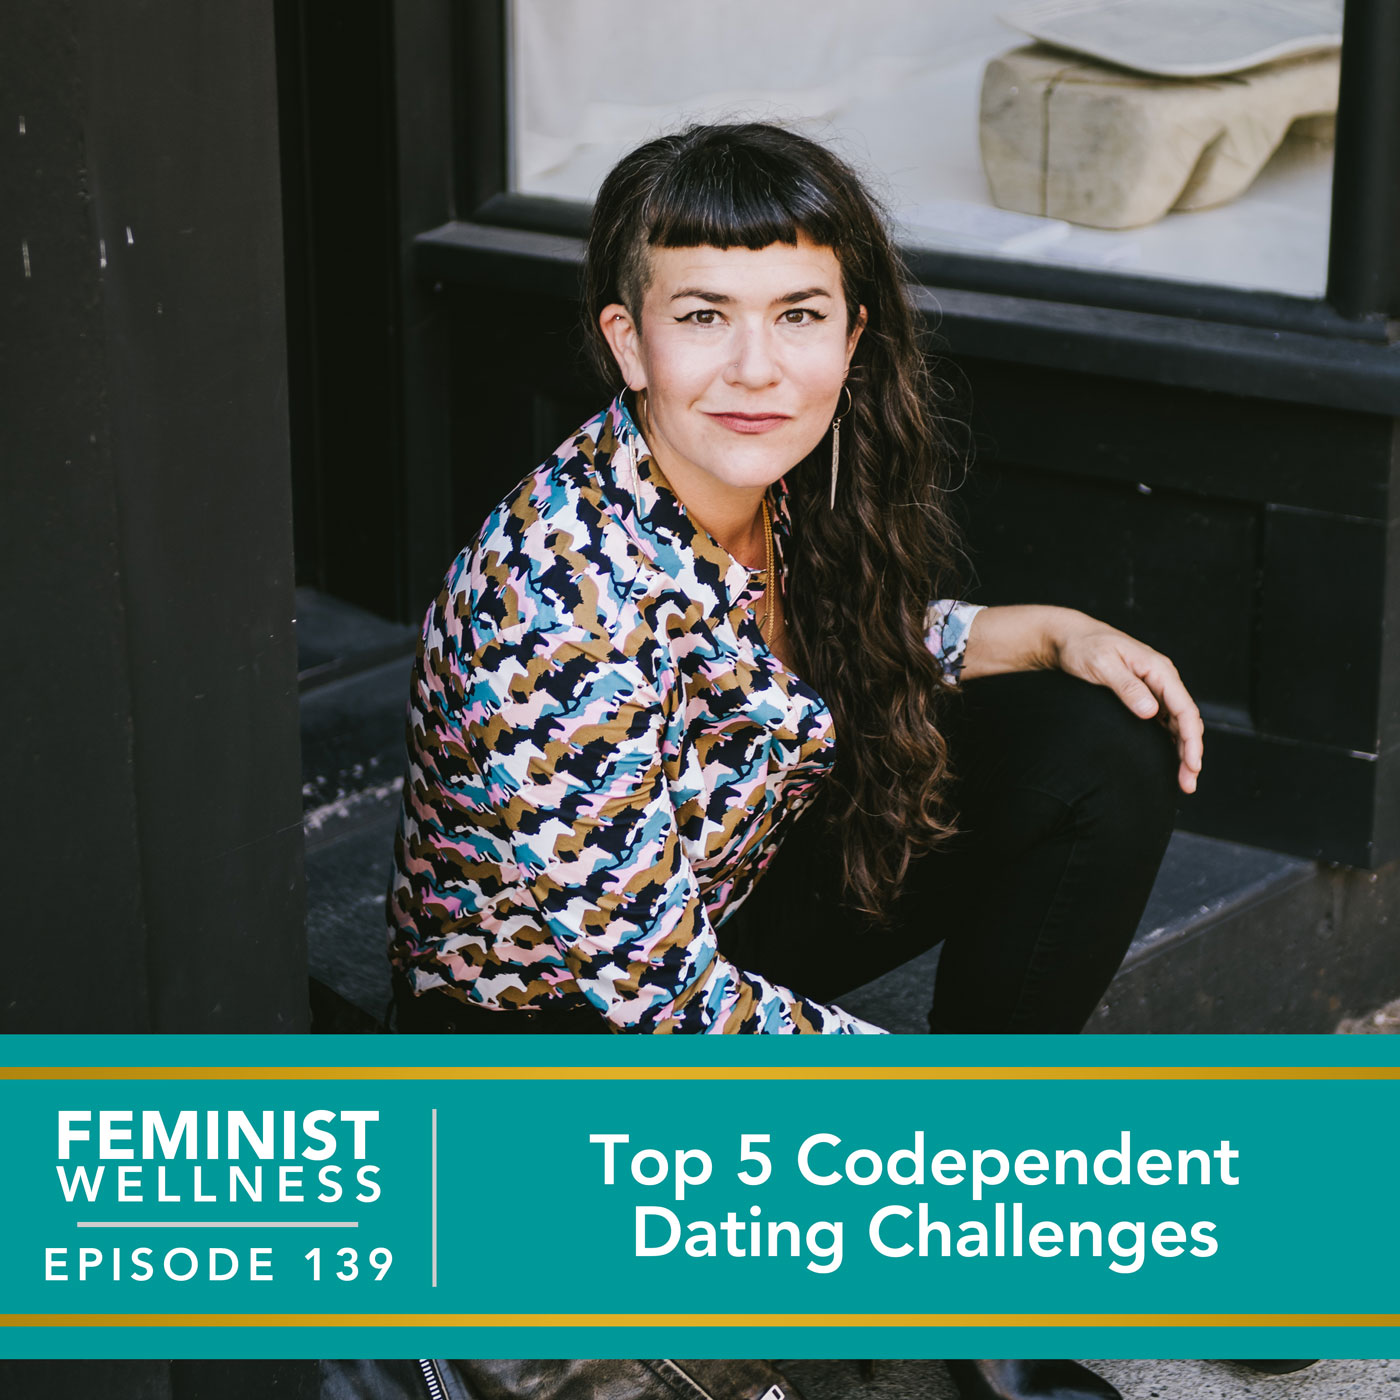 Feminist Wellness with Victoria Albina | Top 5 Codependent Dating Challenges